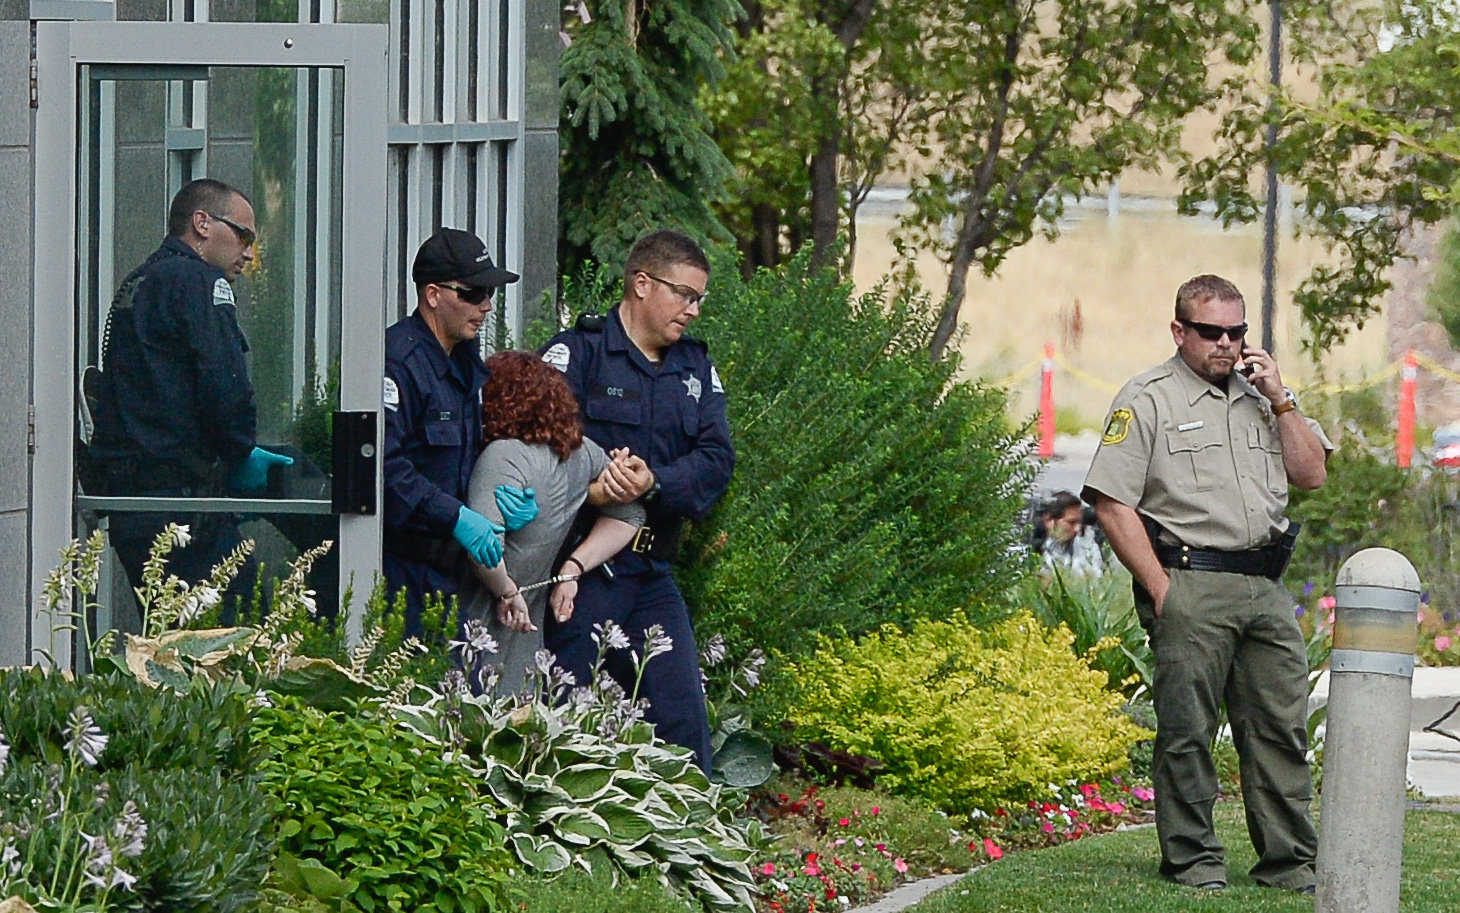 (Francisco Kjolseth  |  The Salt Lake Tribune)  Activists are escorted out of a building where they staged a protest against a private prison company with contracts to hold undocumented immigrants on Thursday, July 12, 2018, at the headquarters of Management and Training Corporation in Centerville.